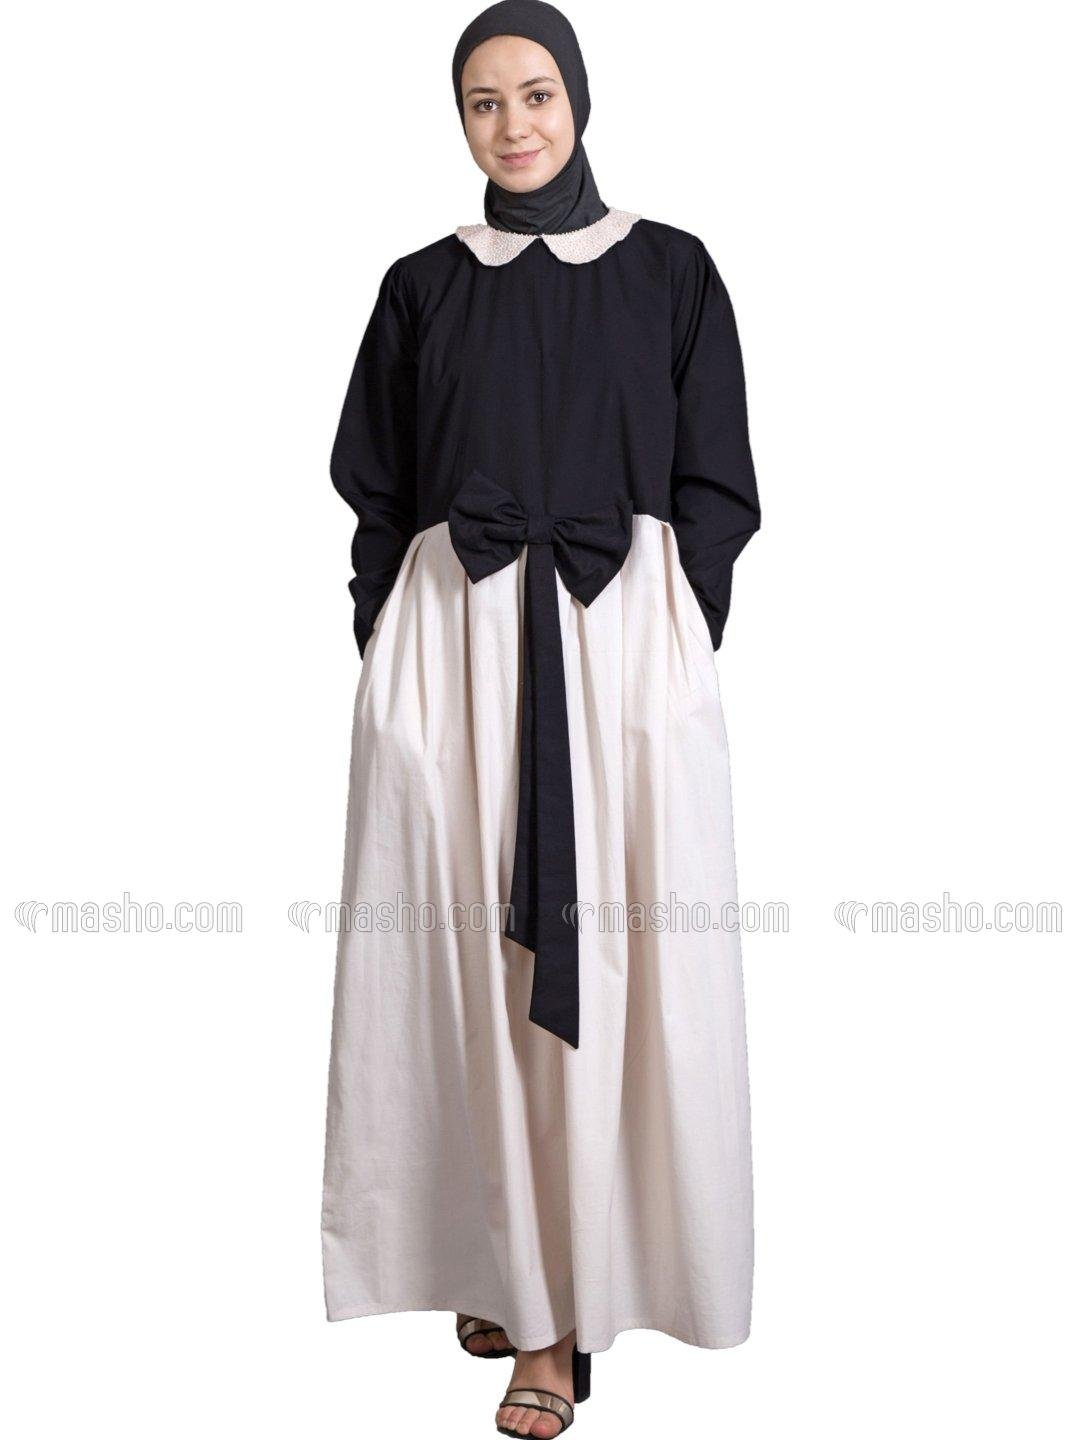 100% Cotton Embroidered Peter Pan Collar Party Abaya In Black And Cream